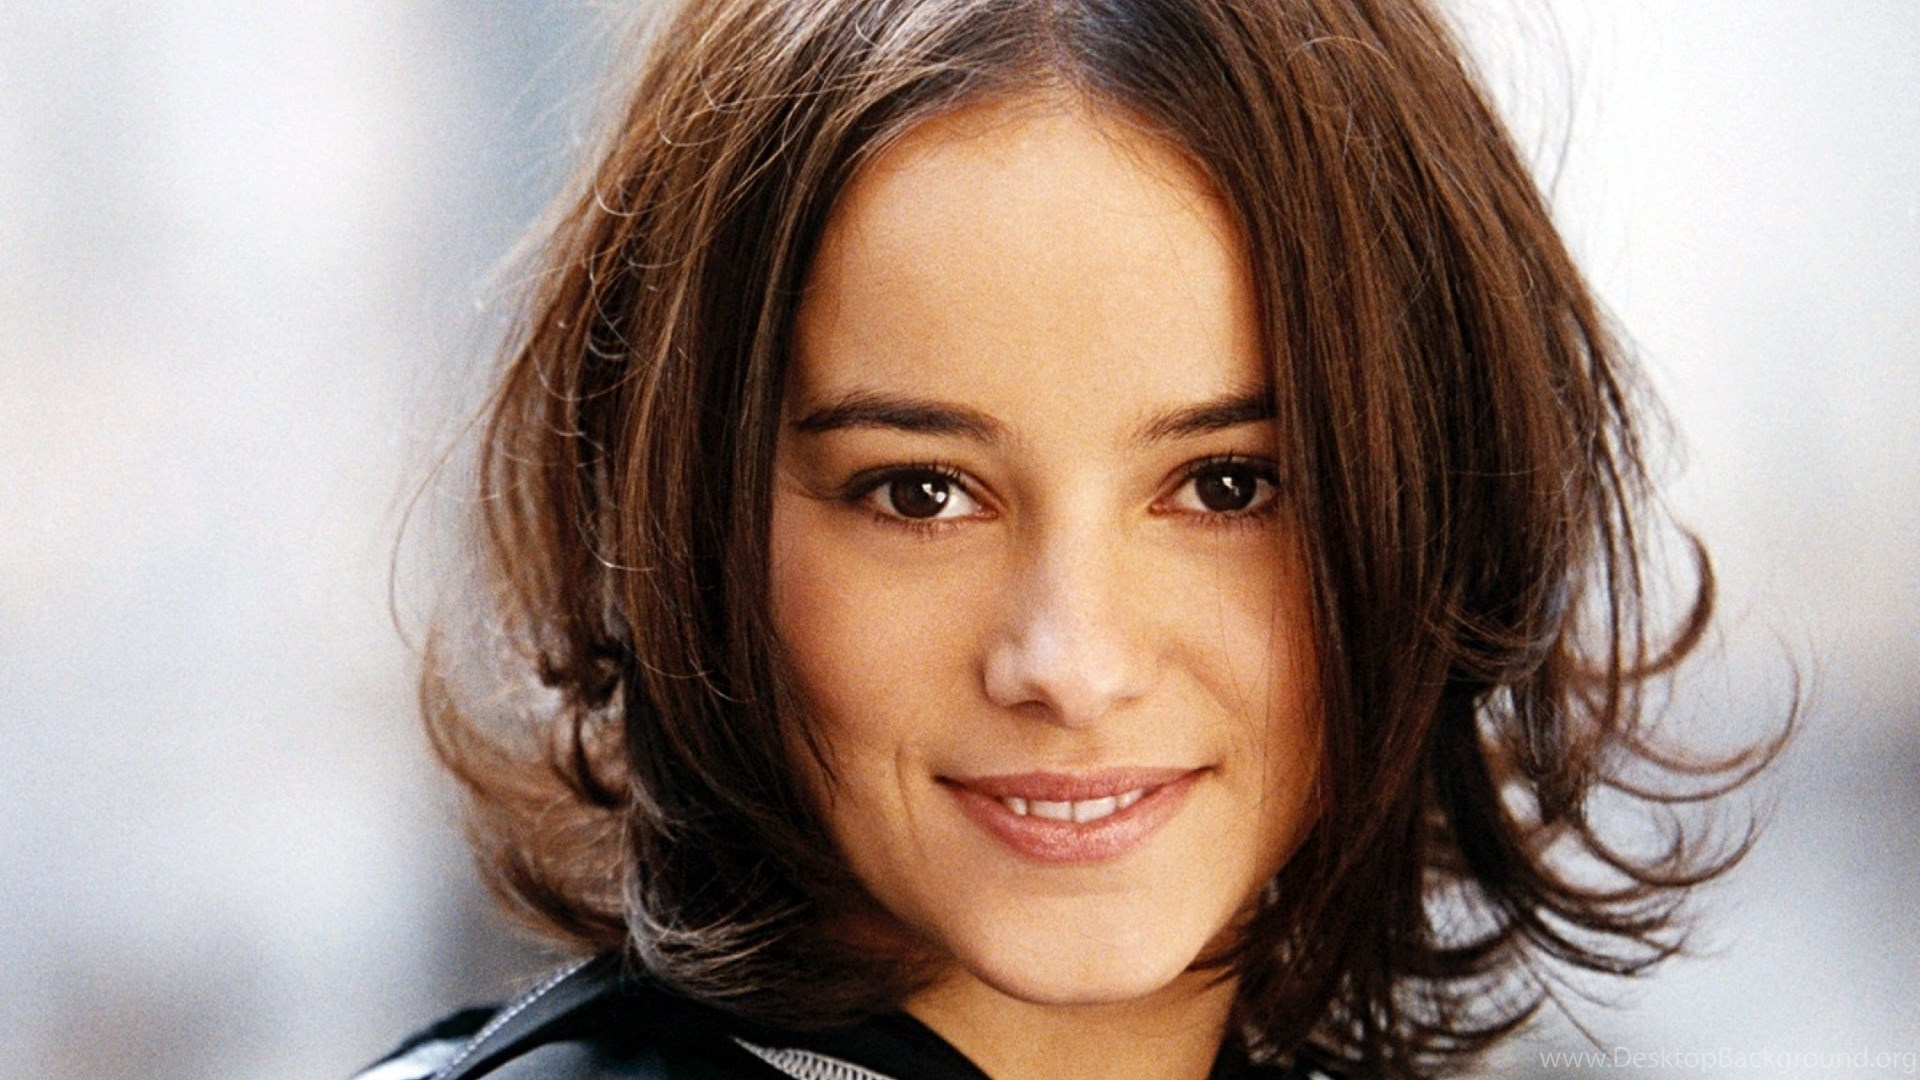 Download Wallpapers 2048x2048 Alizee, Singer, Face, Hairstyle ...